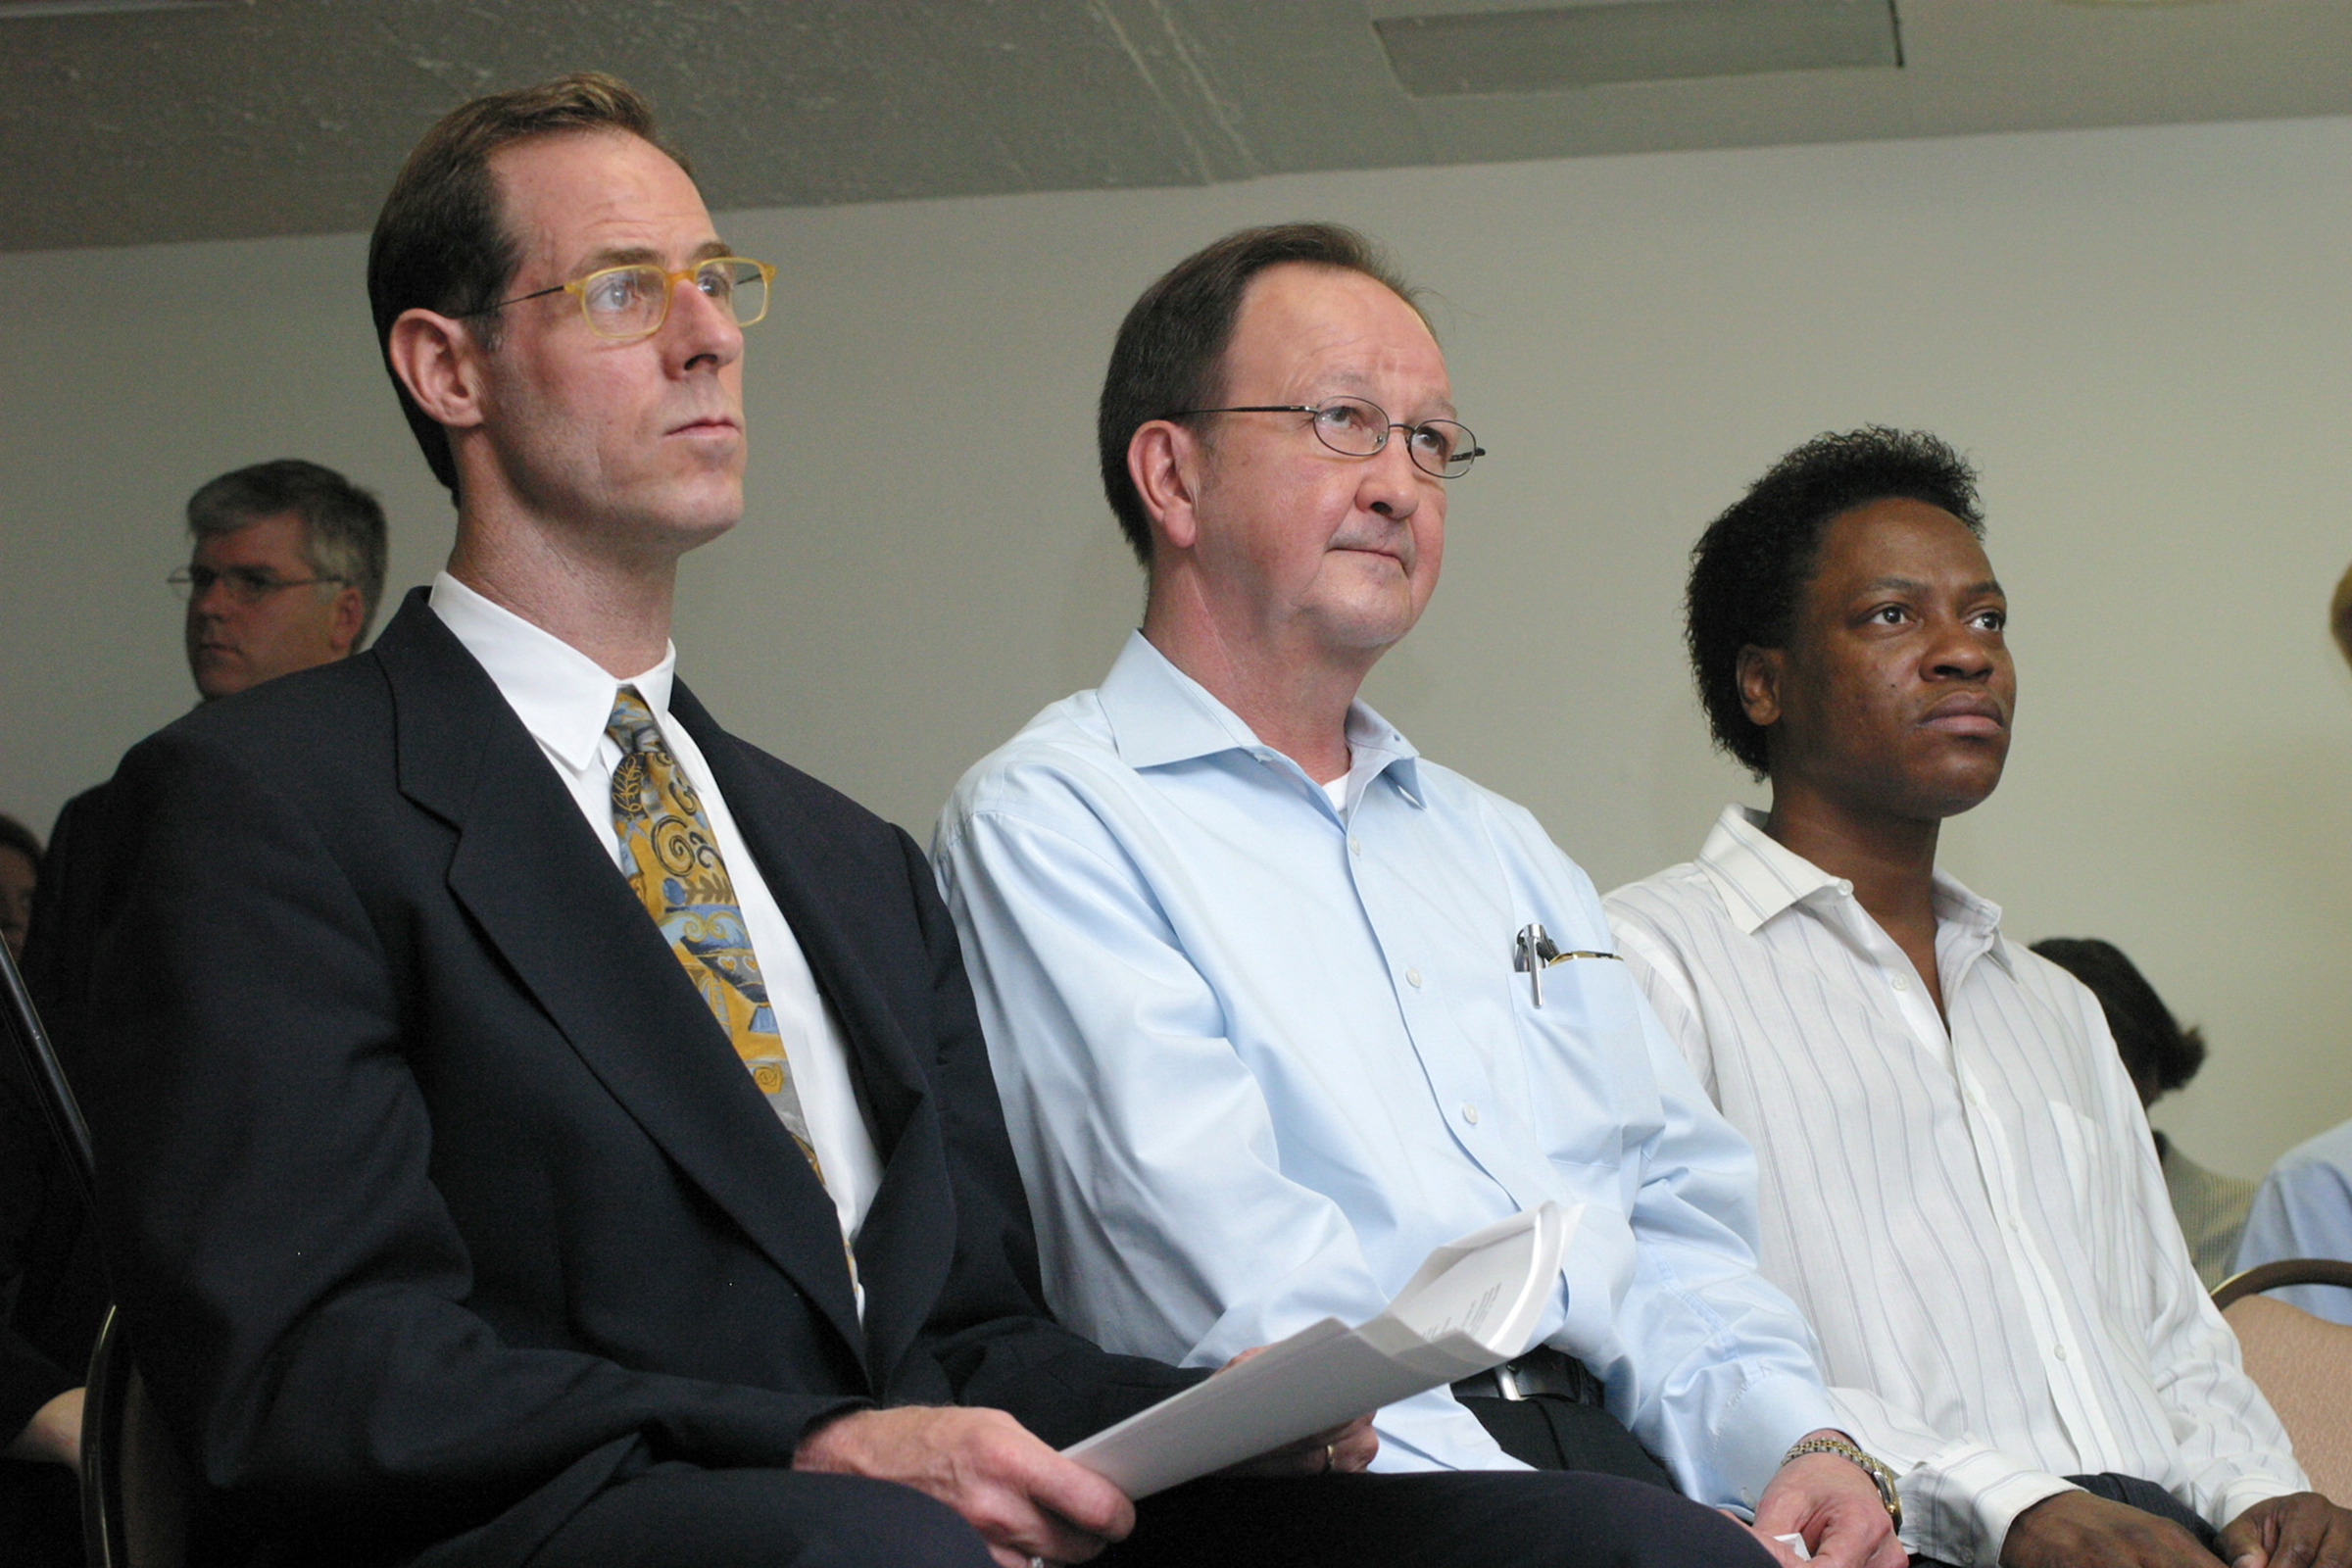 The two men who spent the night in jail in 1998 on sodomy charges, John Lawrence, center, and Tyron Garner, right, sit with their attorney Lee Taft, left, during a press conference in Houston on June 26, 2003.